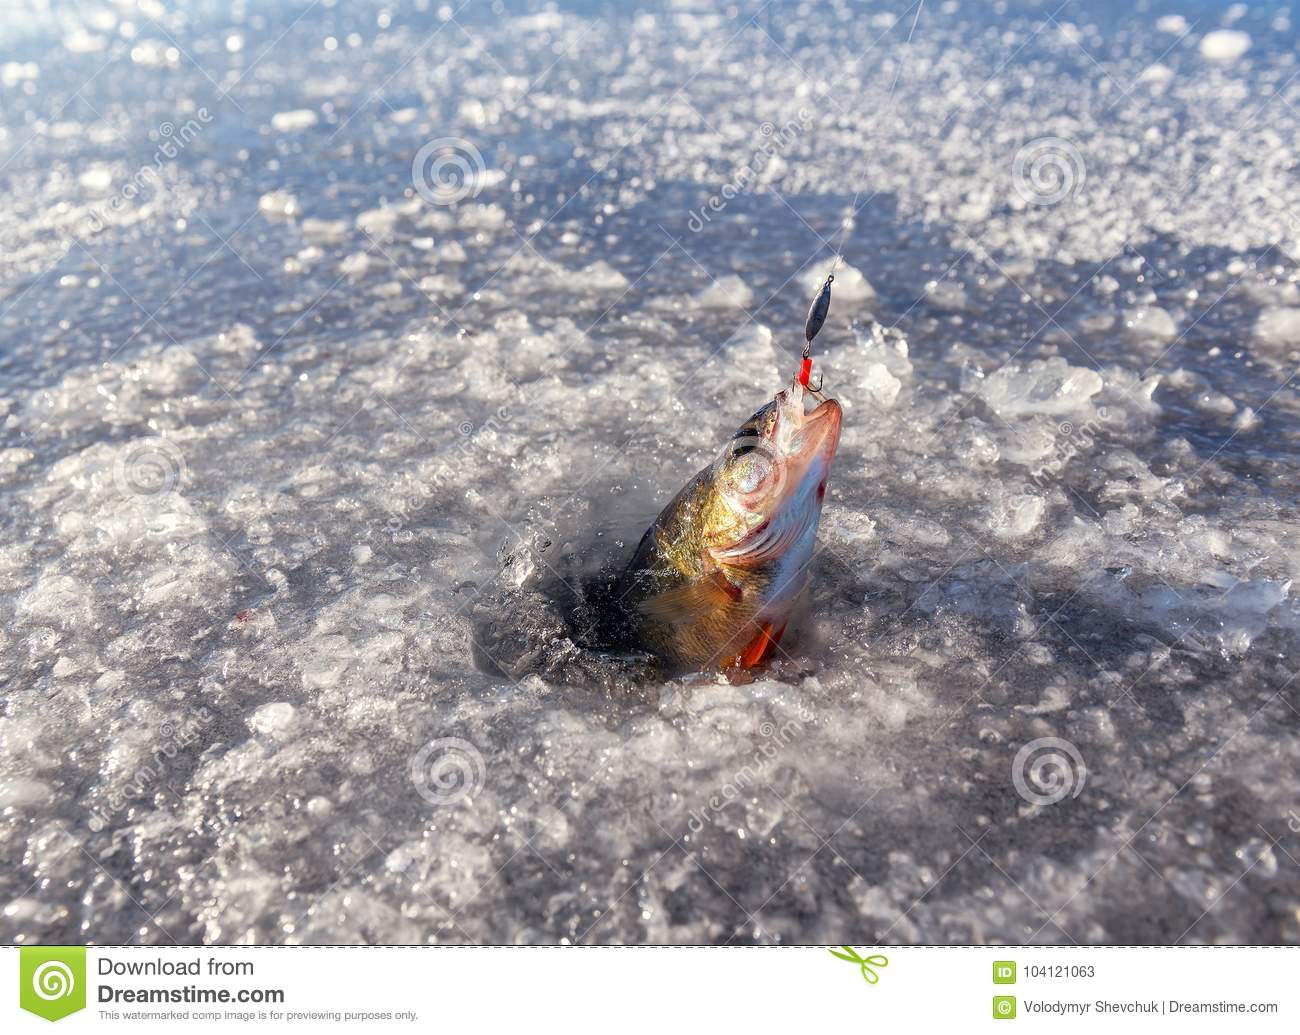 Fishing in the winter for perch. Winter fishing on ice